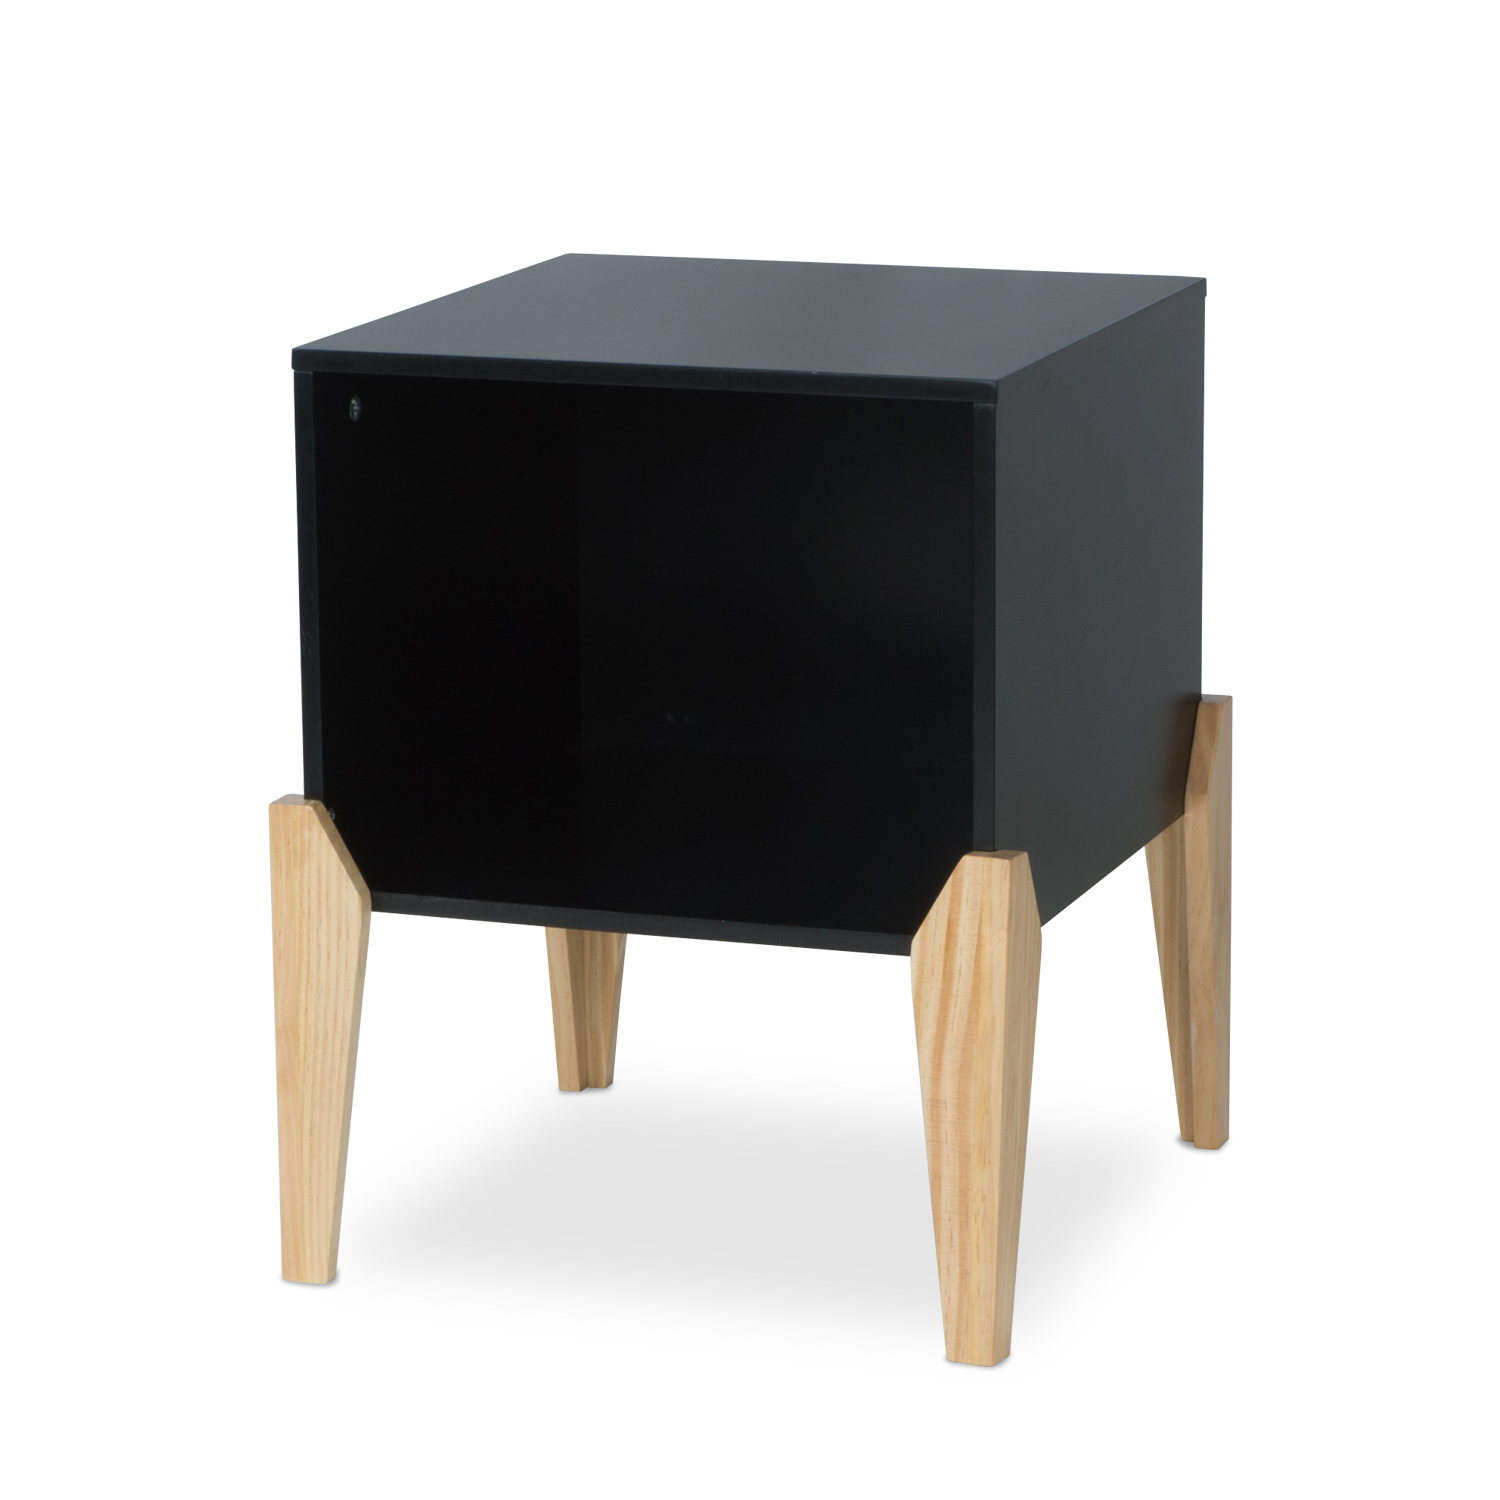 Mainstays Bedroom Nightstand, Open Wood End Table In Multiple Colors